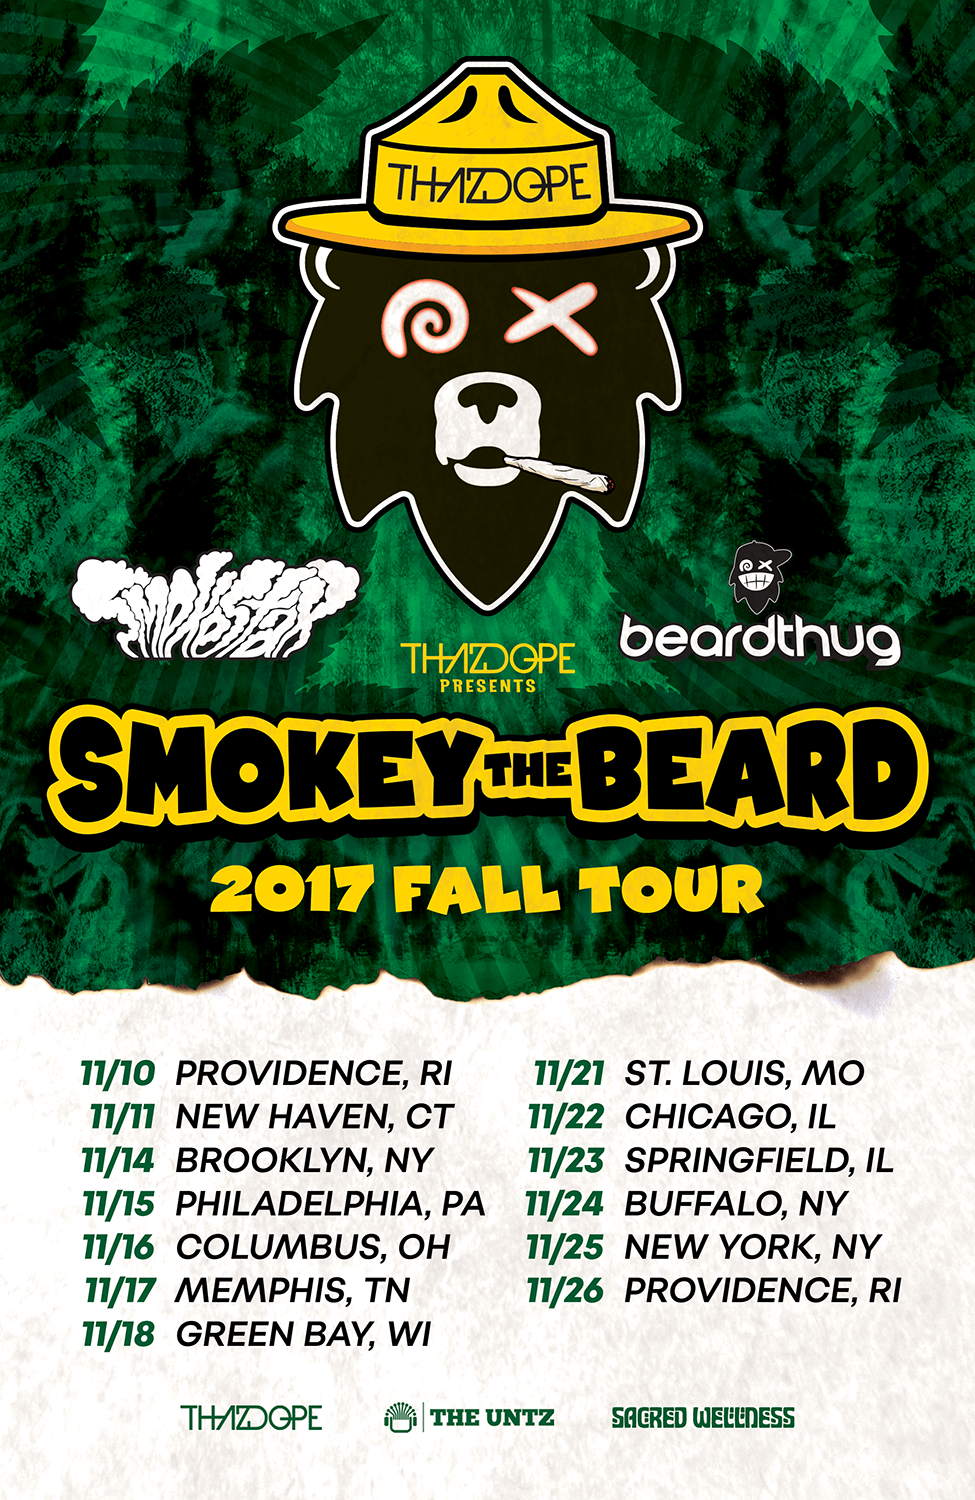 Smokey The Beard tour